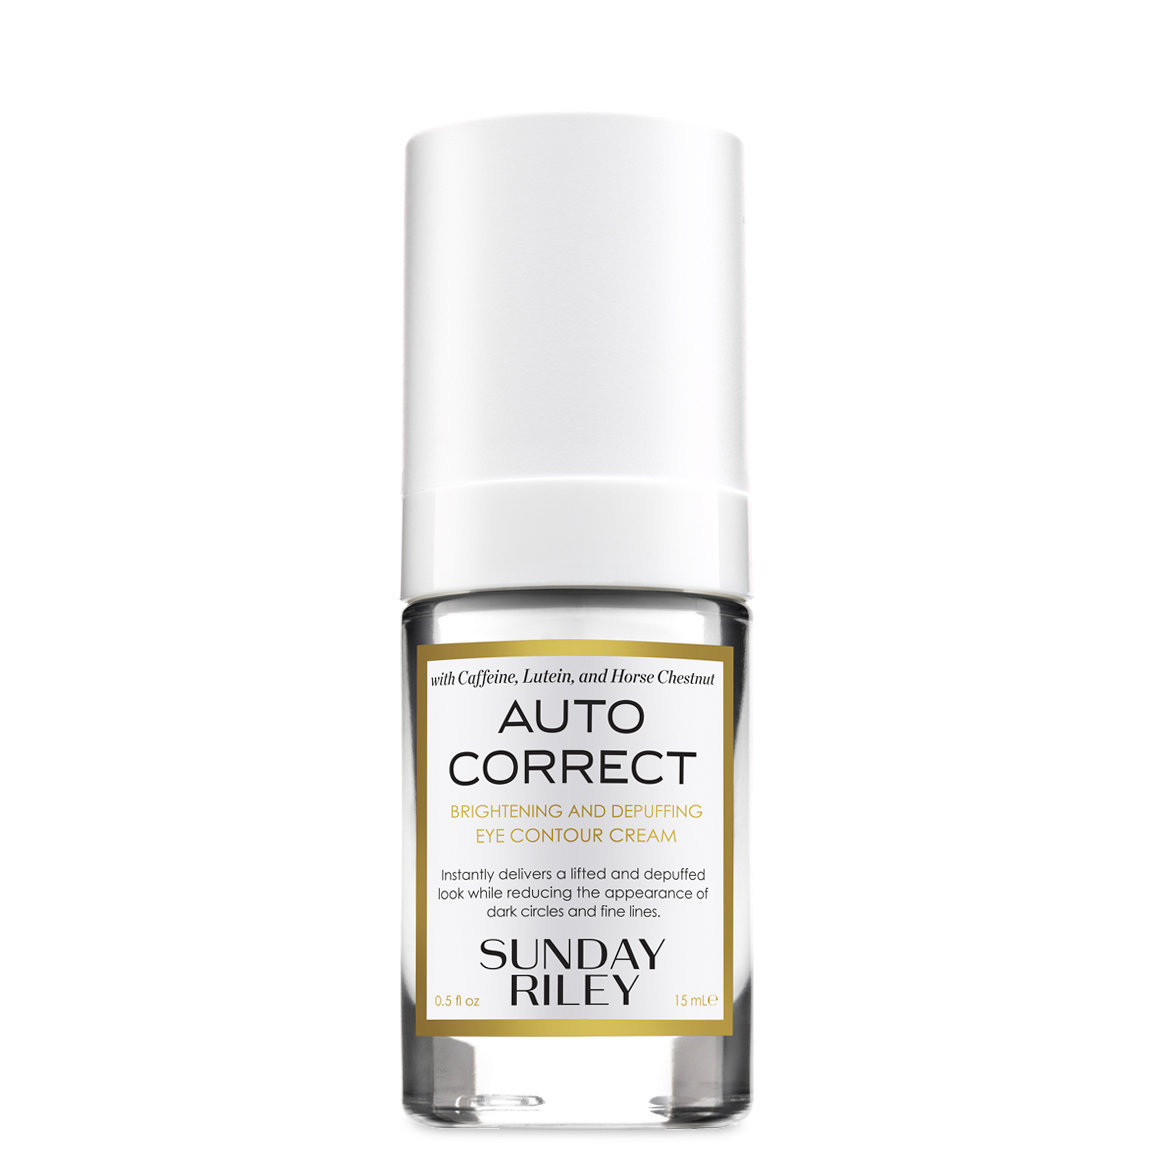 Sunday Riley Auto Correct Brightening And Depuffing Eye Contour Cream alternative view 1 - product swatch.